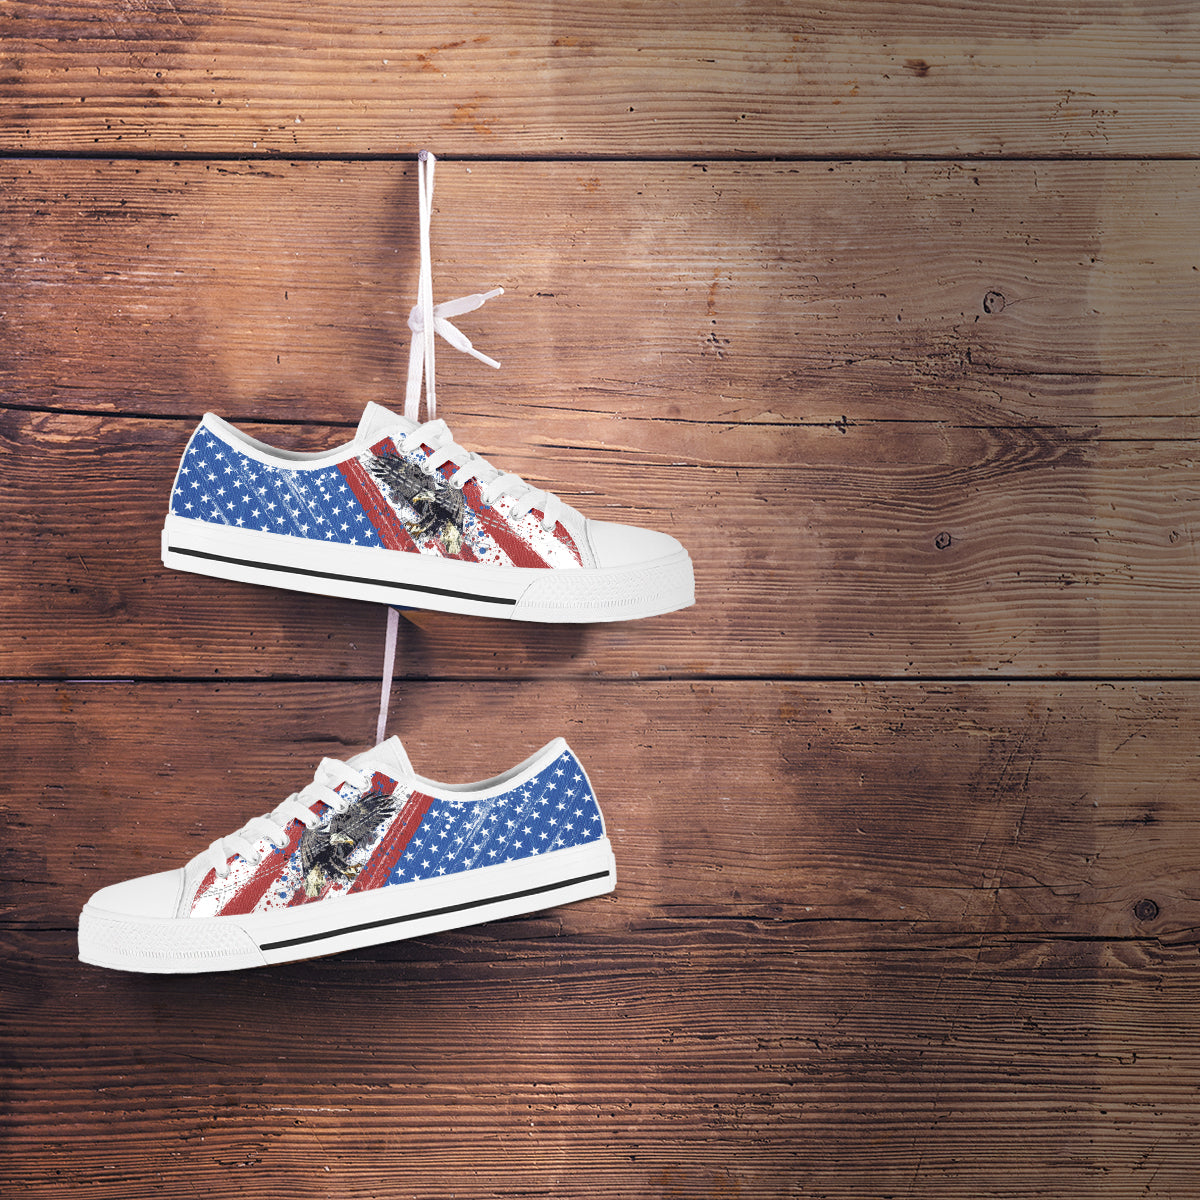 USA Flag & Eagle - Men's Low Top Shoes